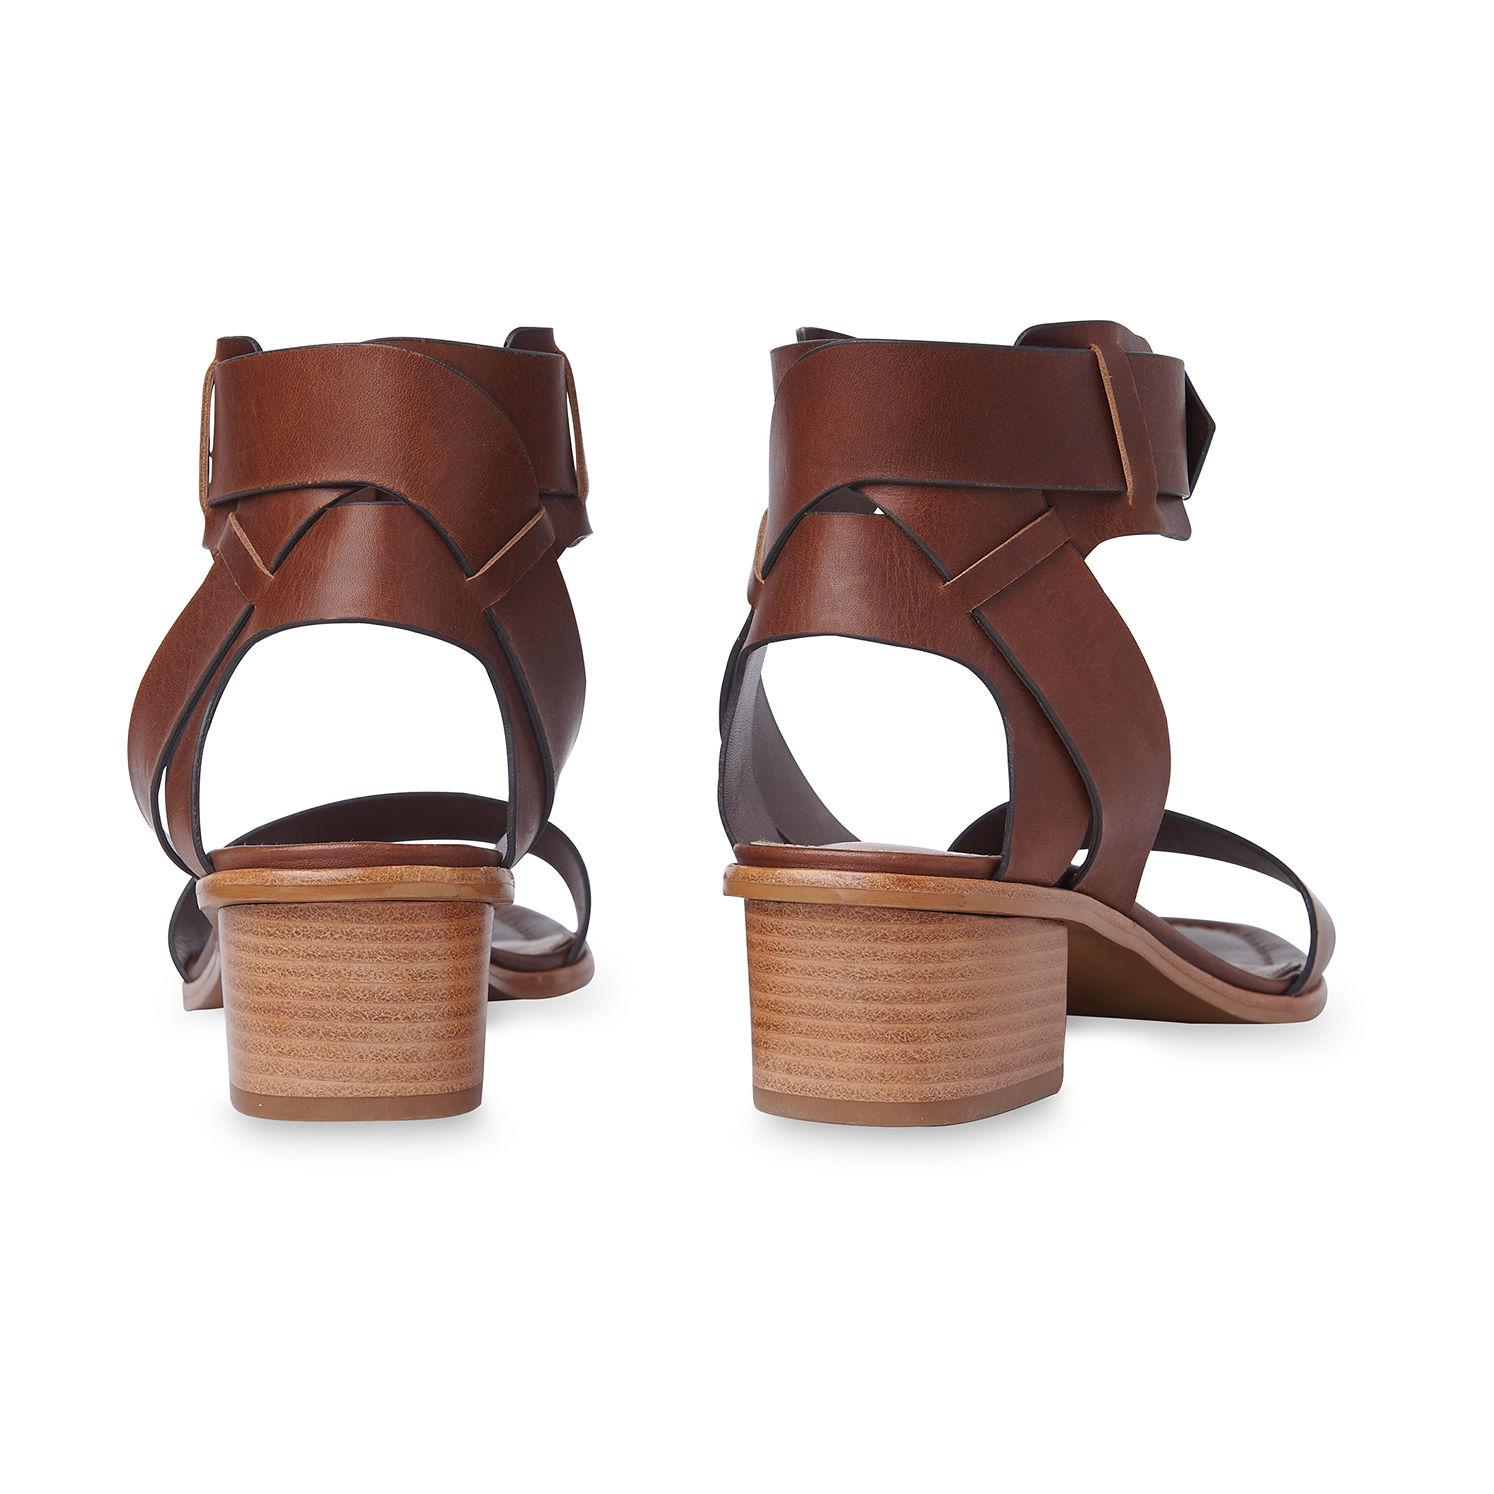 6191d0ea5a Lyst - Whistles Lennox Cuff Mid Block Sandal in Brown - Save 91%